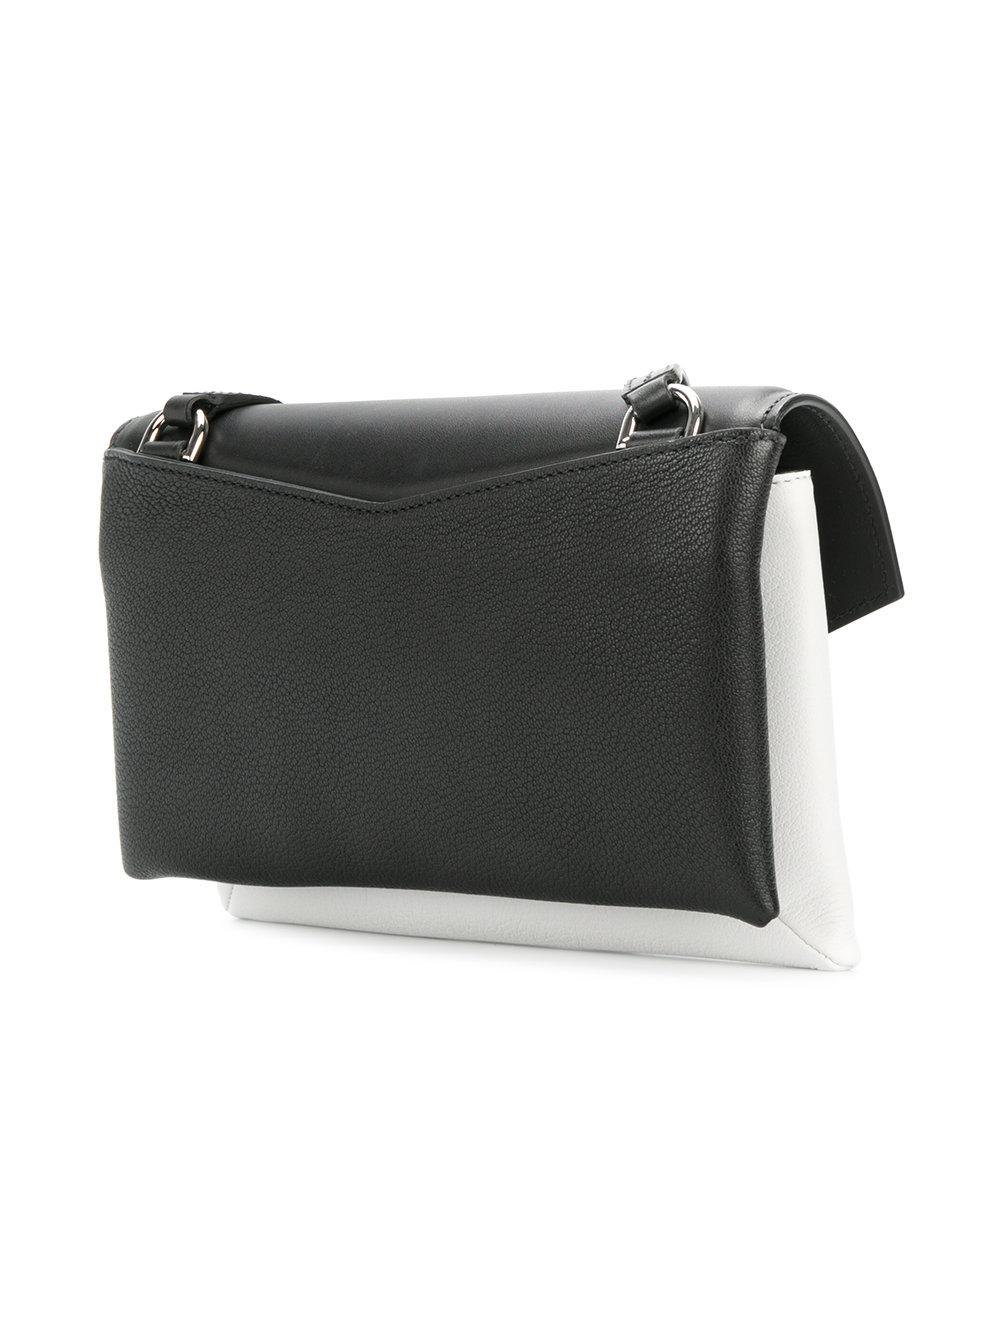 013a7fc0f608 Givenchy Duetto Crossbody Bag in Black - Lyst